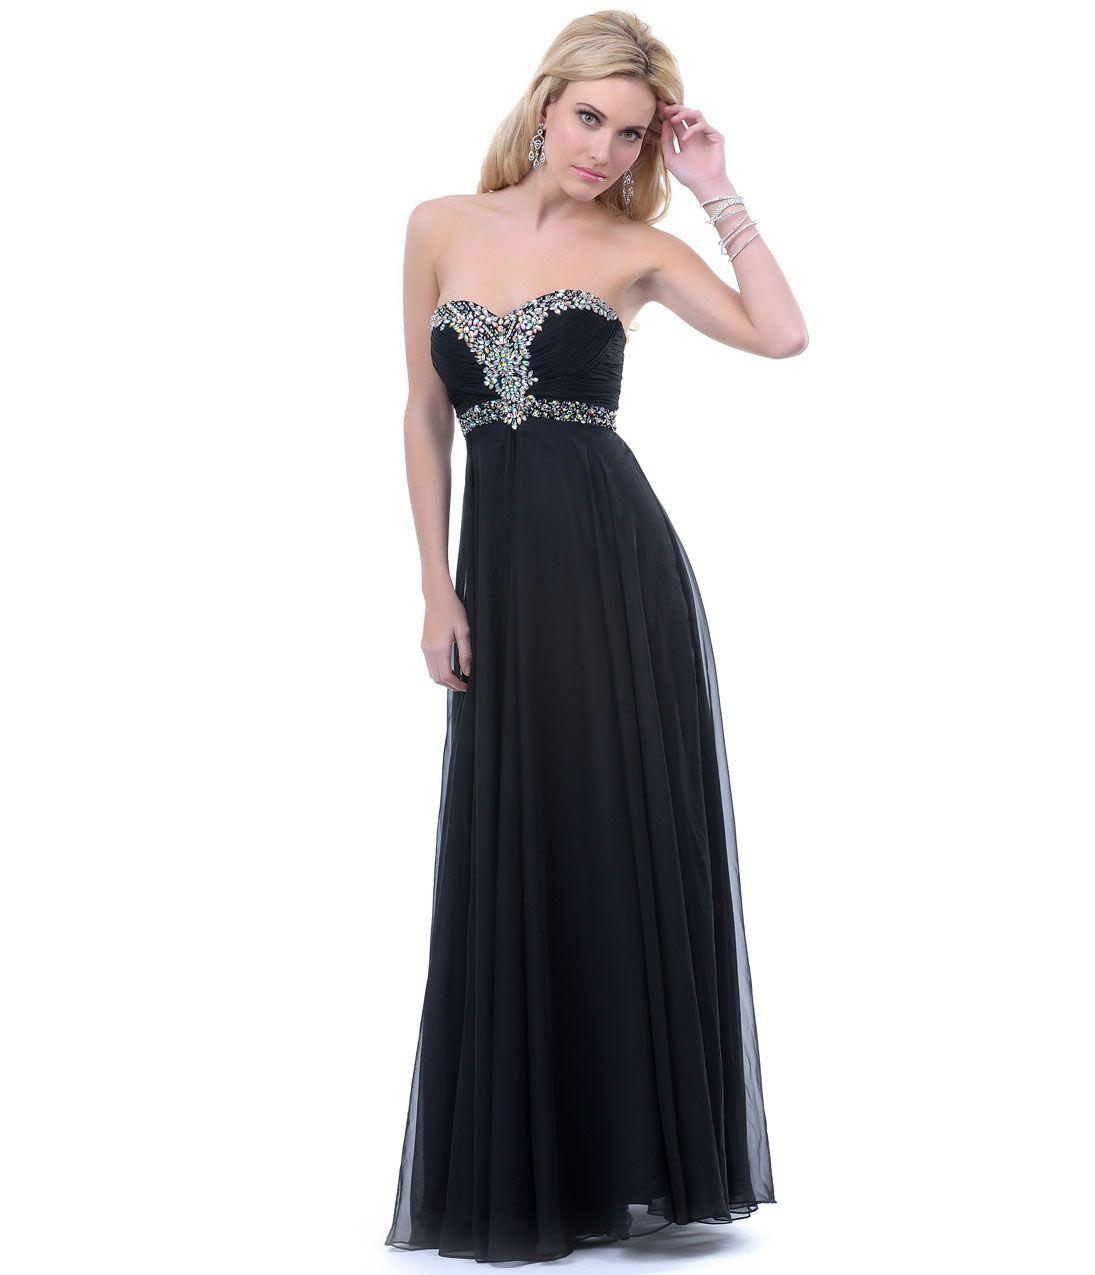 Unique vintage gg s pinterest prom dresses black prom